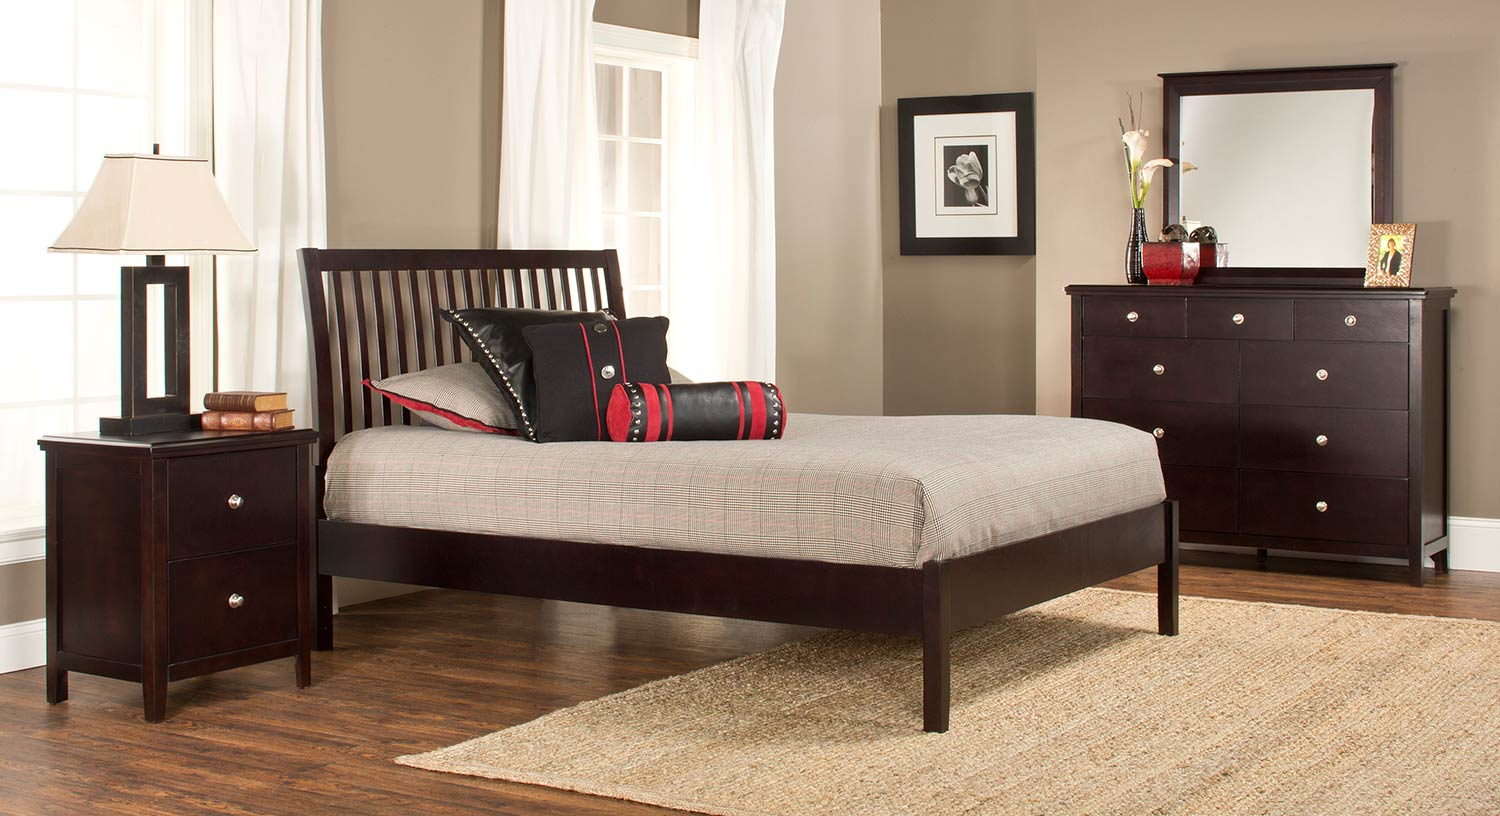 Hillsdale Metro Liza Platform Bedroom Collection - Dark Espresso